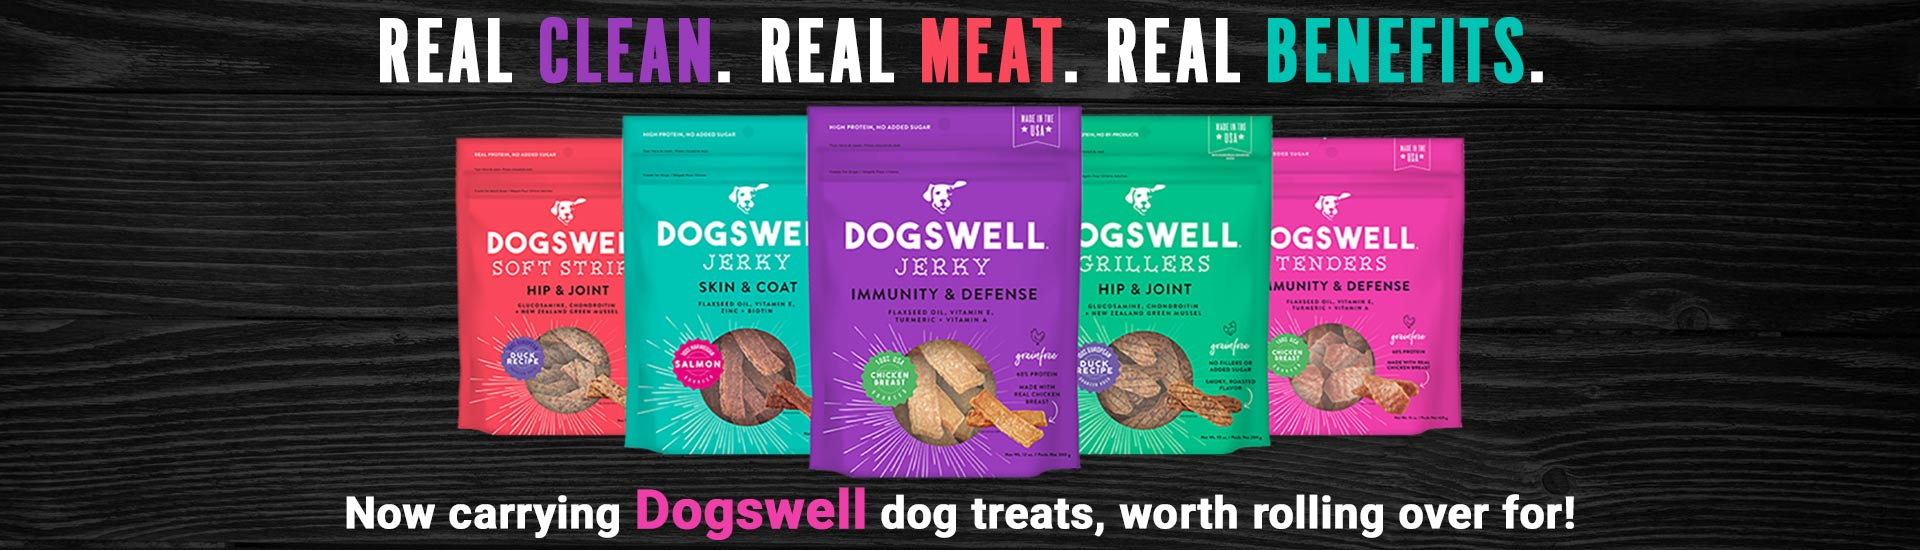 Real Clean. Real Meat. Real Benefits. Now carrying Dogswell dog treats, worth rolling over for!